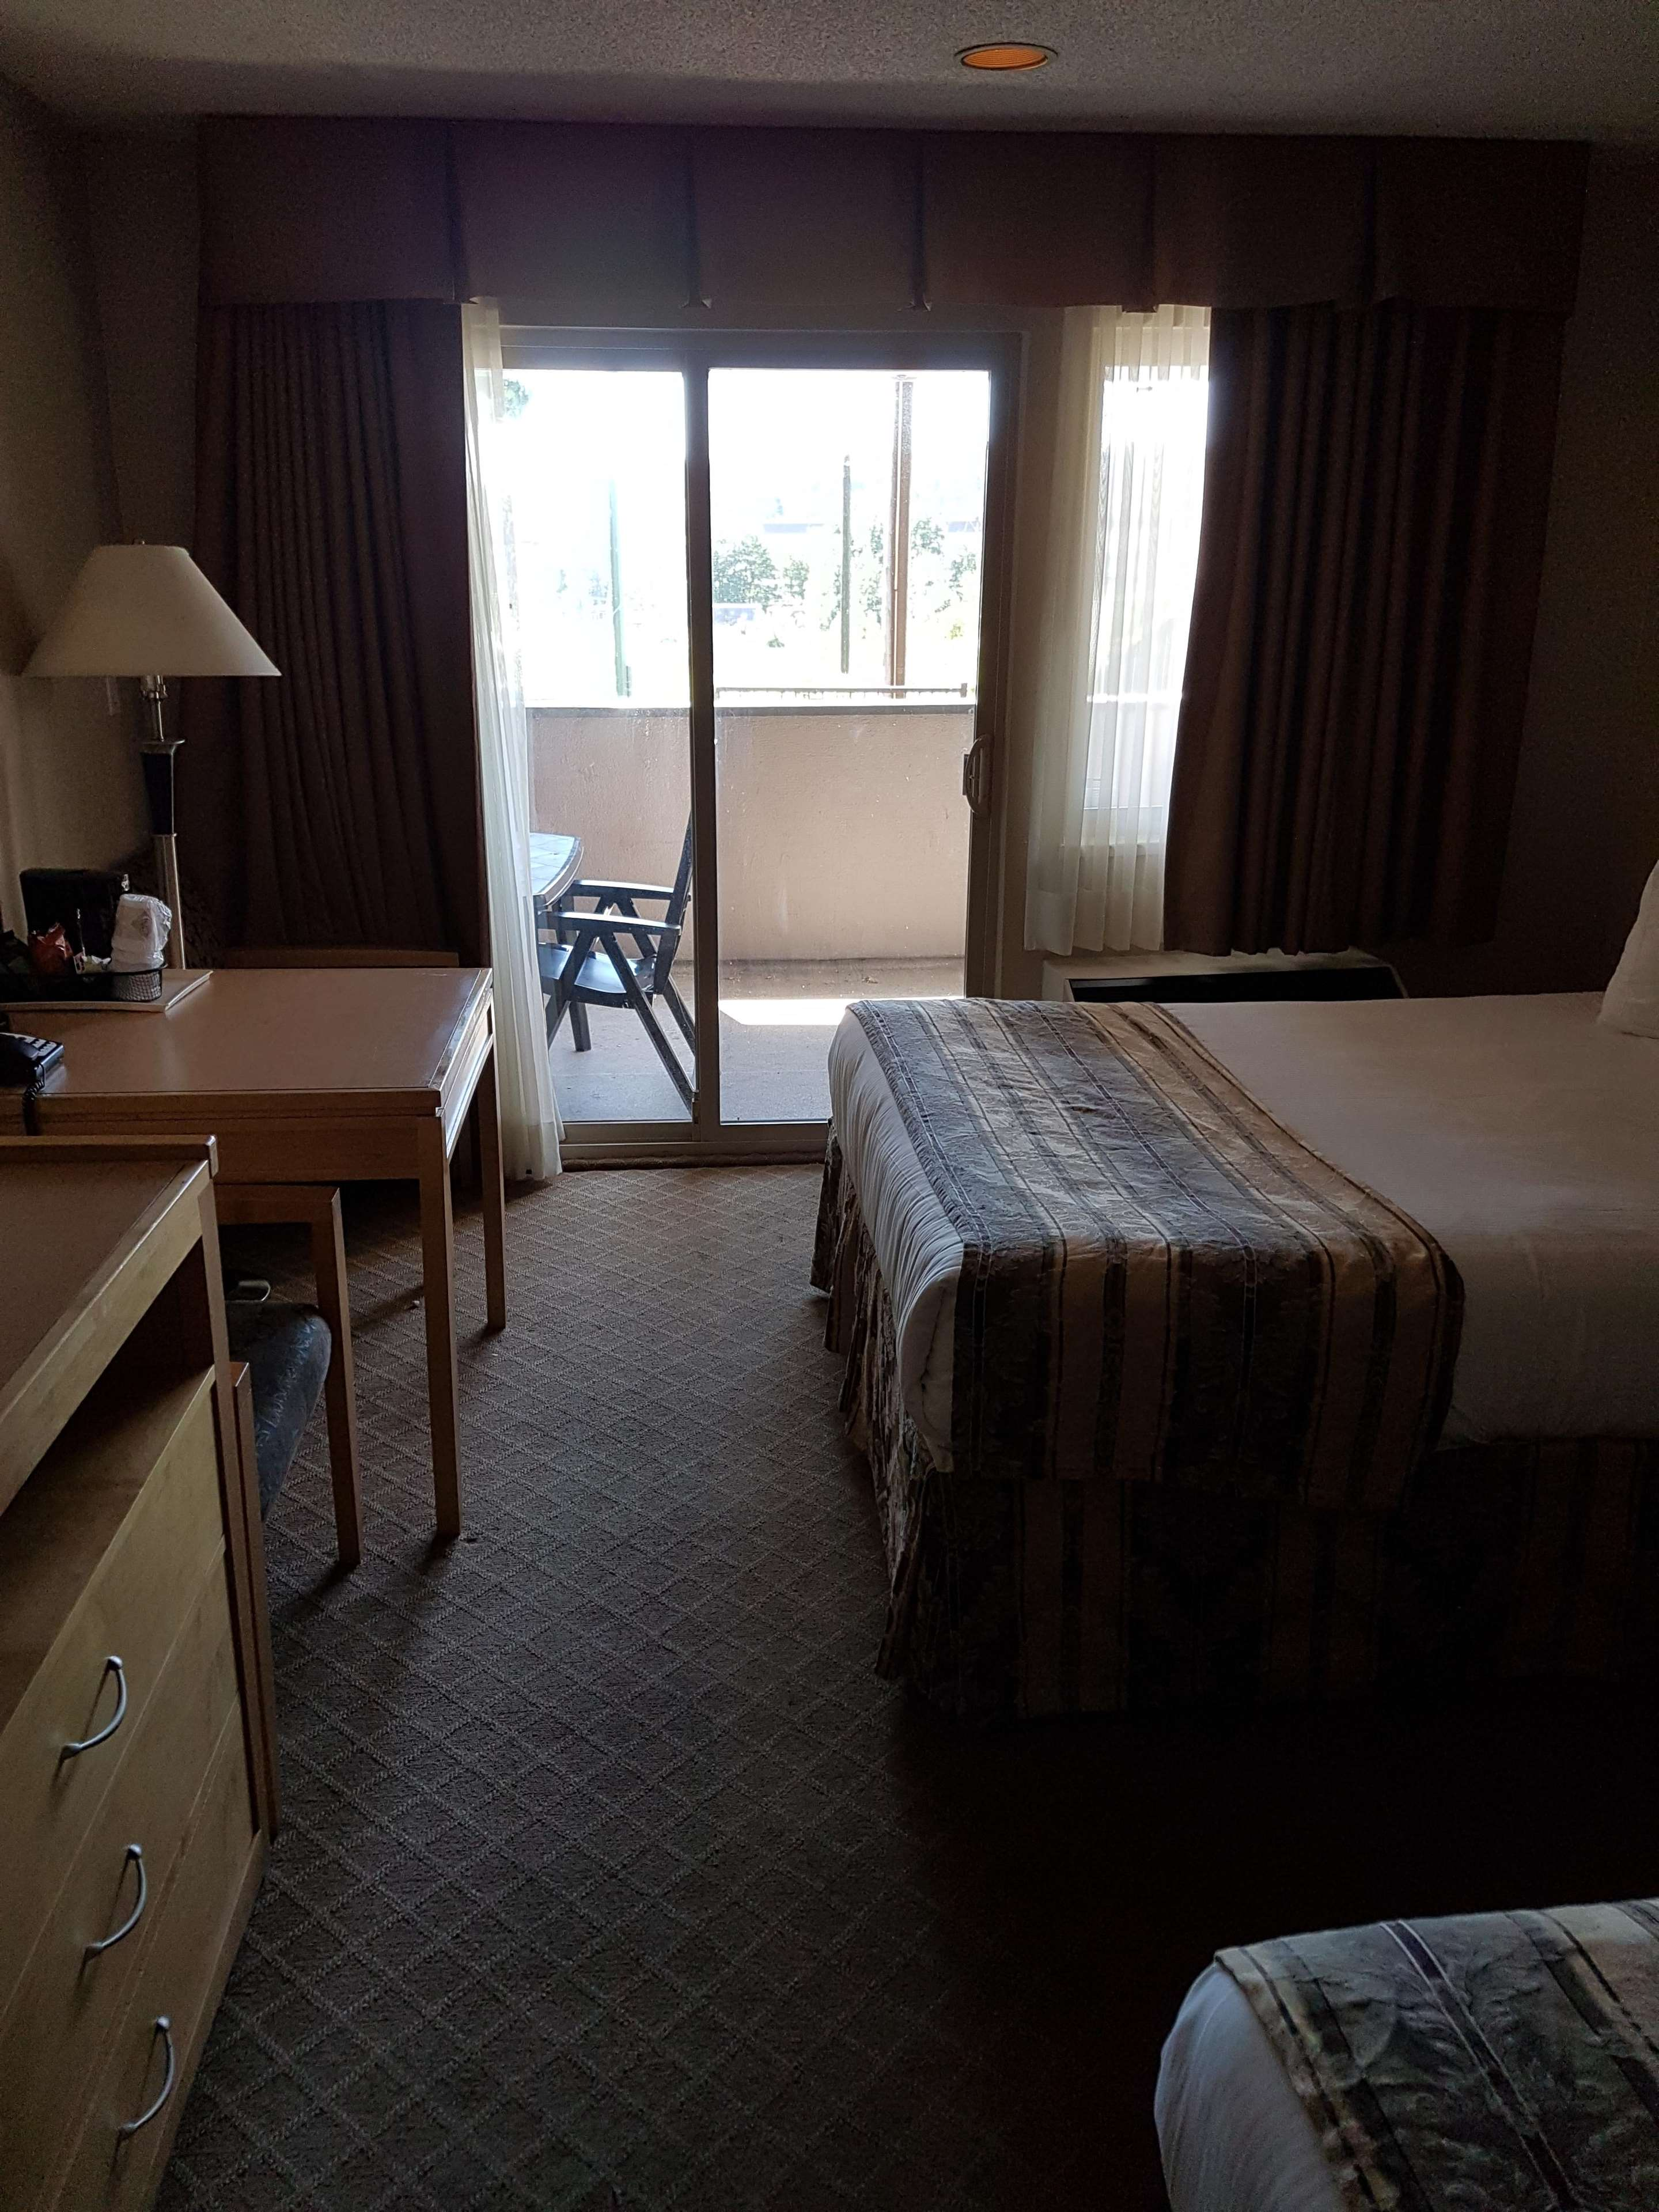 SureStay Plus Hotel by Best Western Coquitlam in Coquitlam: In Room Amenity